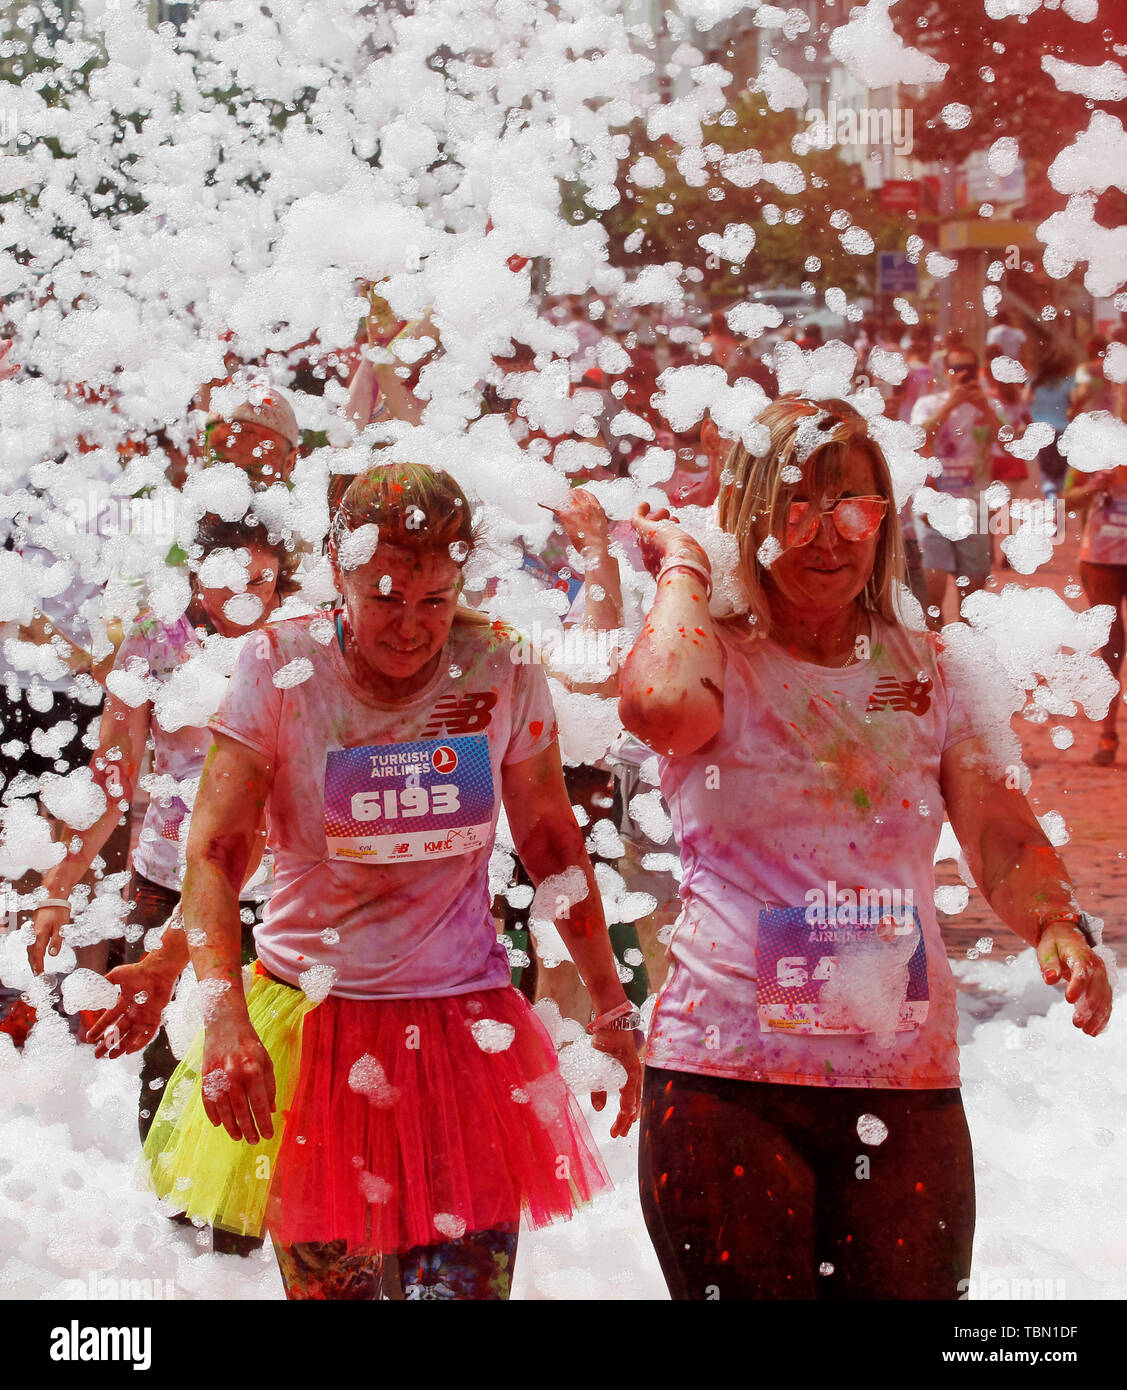 Participants being showered with colours during the event. The Color Run, also known as 'the happiest 5,000 meters on the planet', is an event series and paint race, its first event was in the United States in January 2012 since then the run has spread across the globe leaving a trail of color and happy runners across different continents and countries. The untimed event has no winners or prizes, but runners are showered with colored powder, made of food-grade corn starch, at stations along the run. In Ukrainian capital the first time Kyiv Color Run started in 2014. - Stock Image